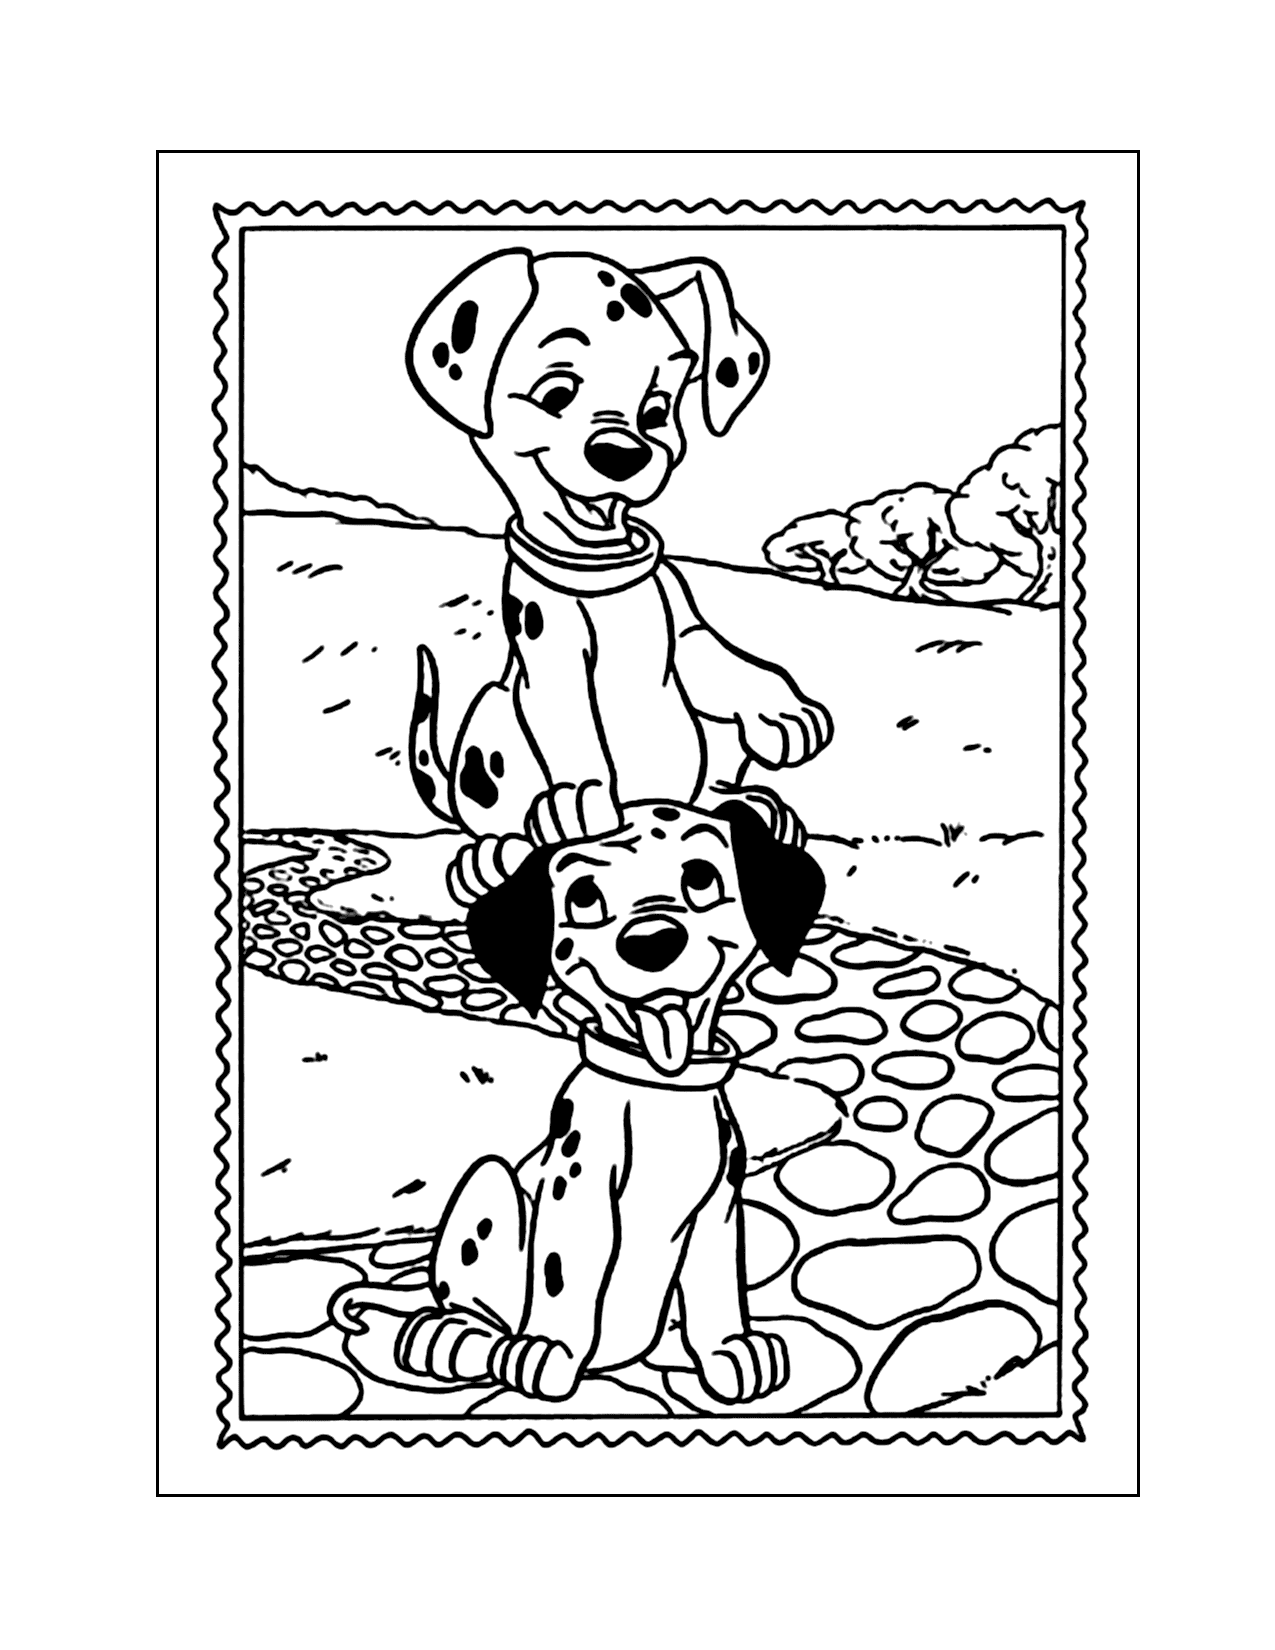 Playful Dalmatian Puppies Coloring Page